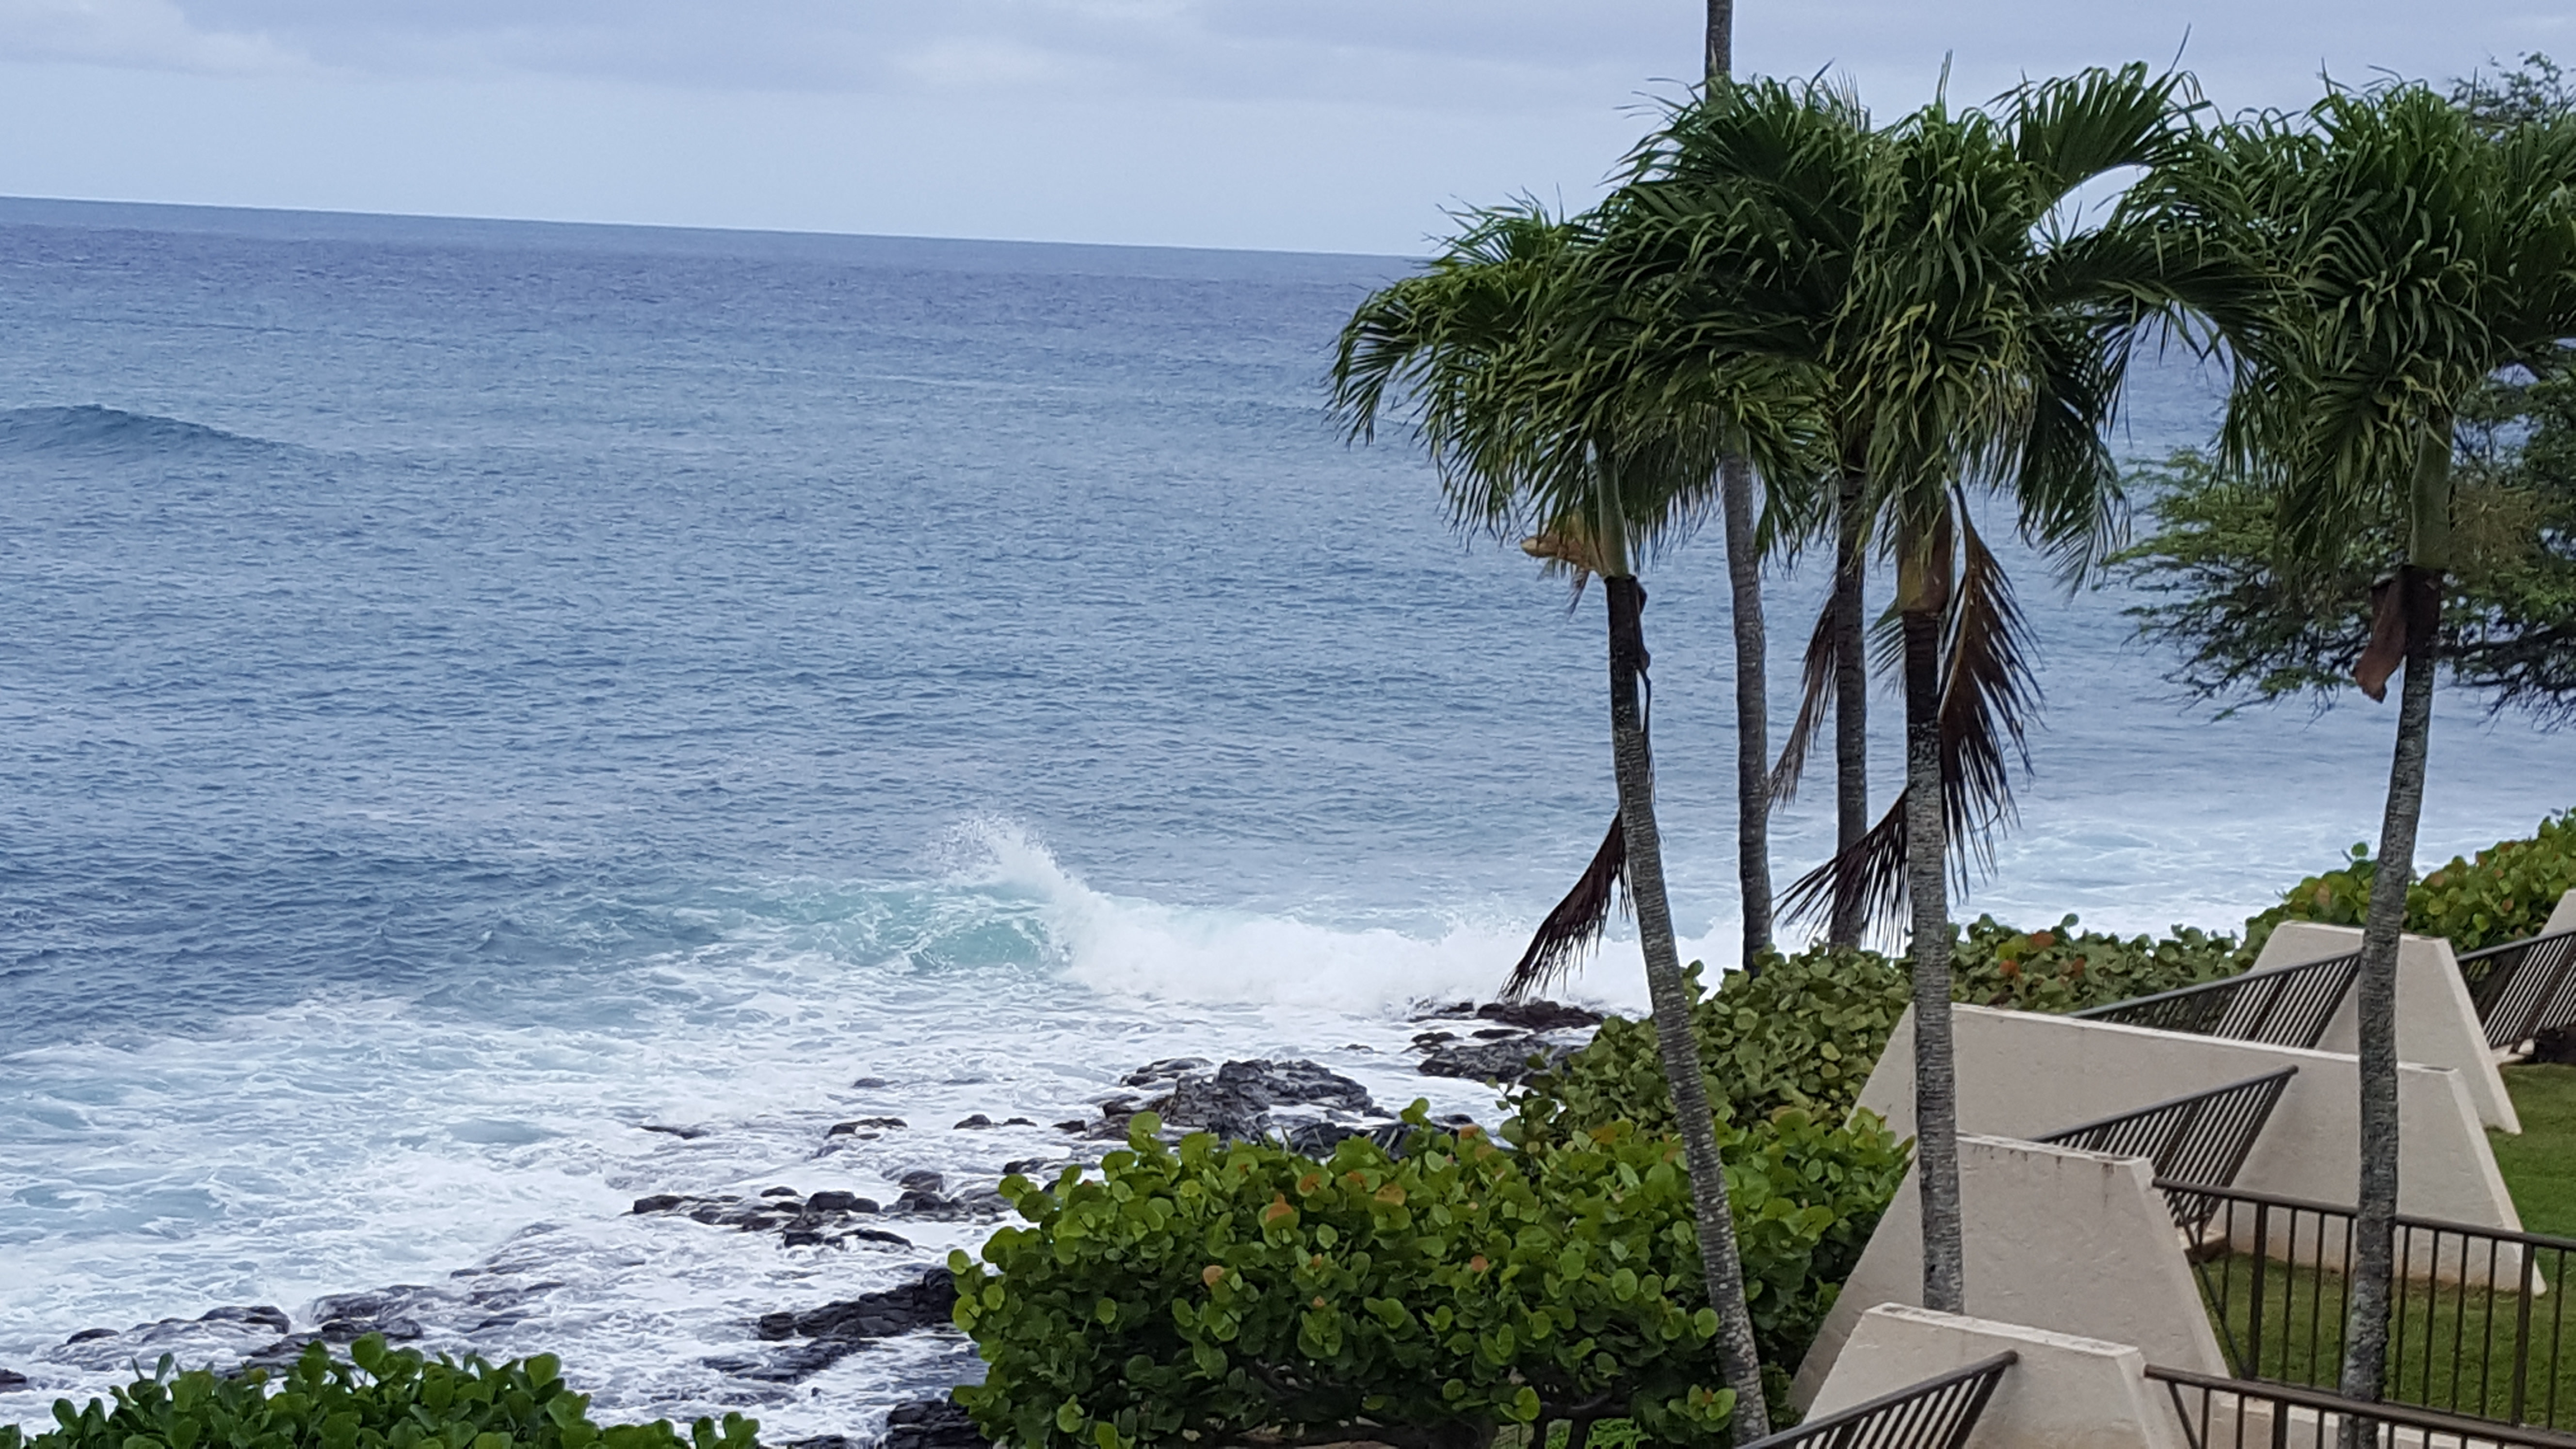 View of waves from balcony